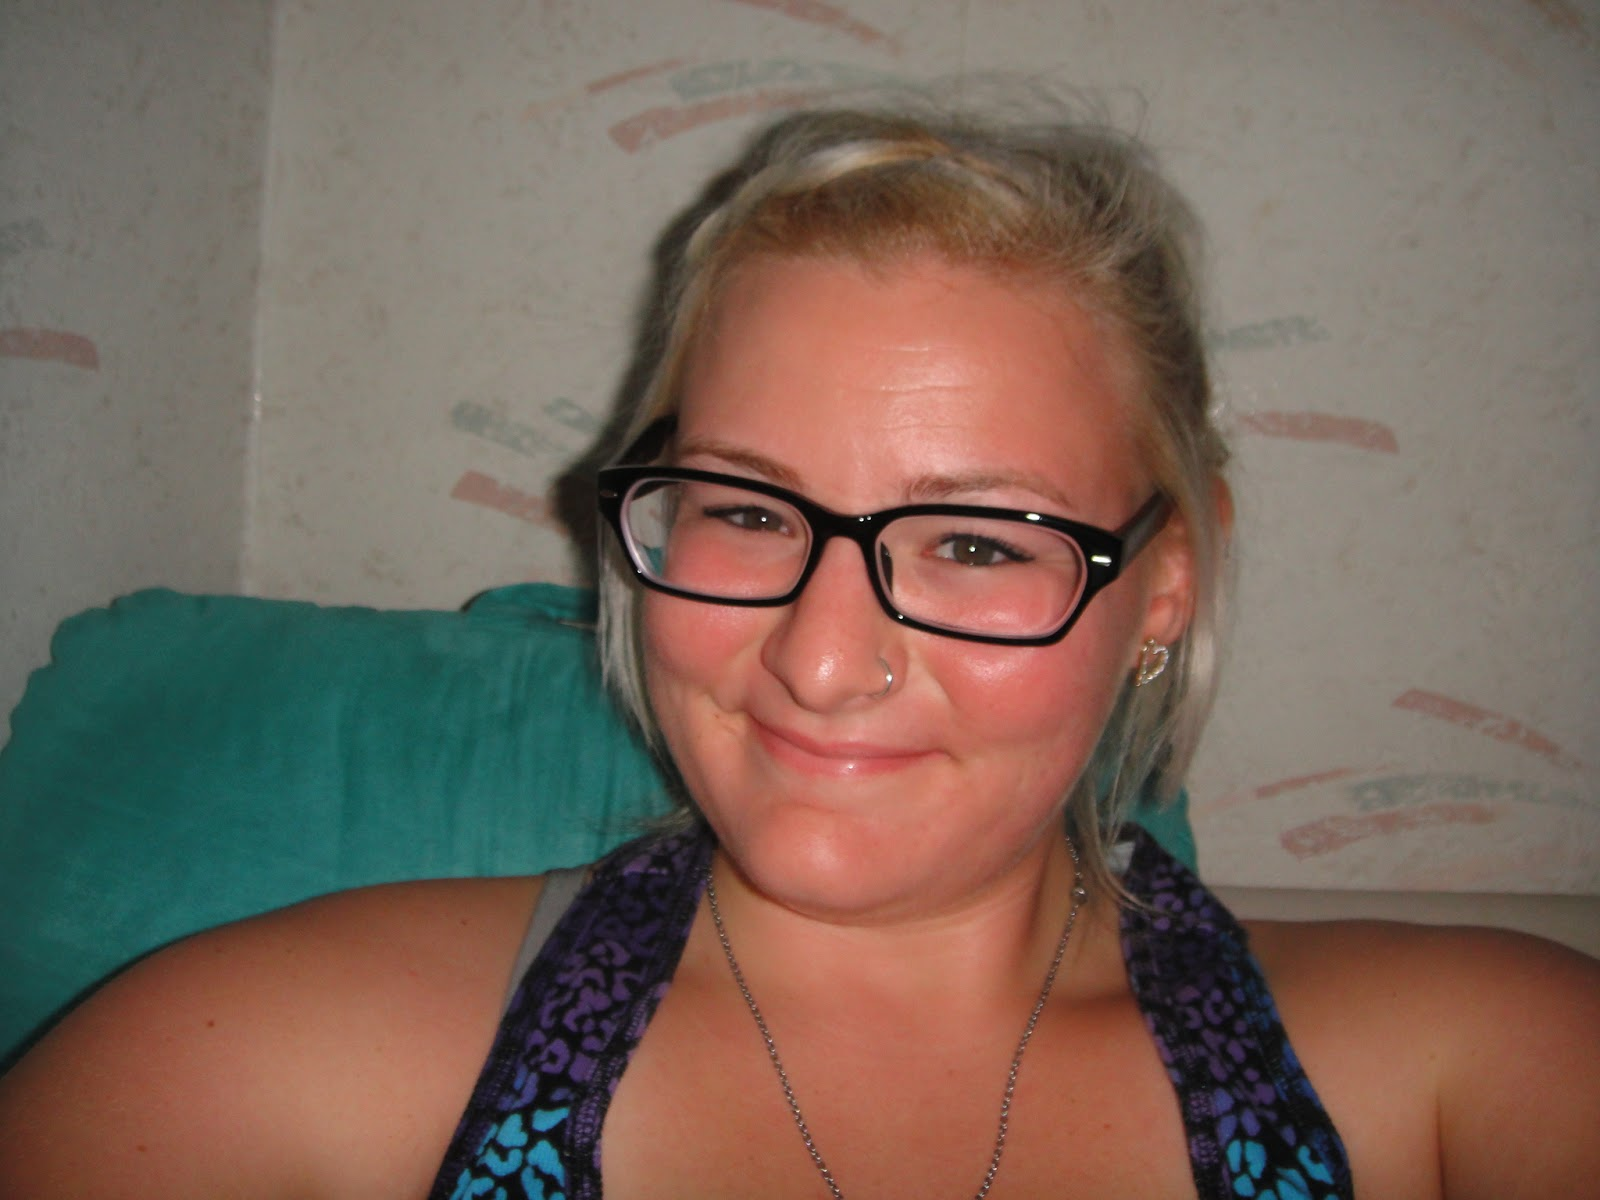 Chubby Blonde Wearing Glasses